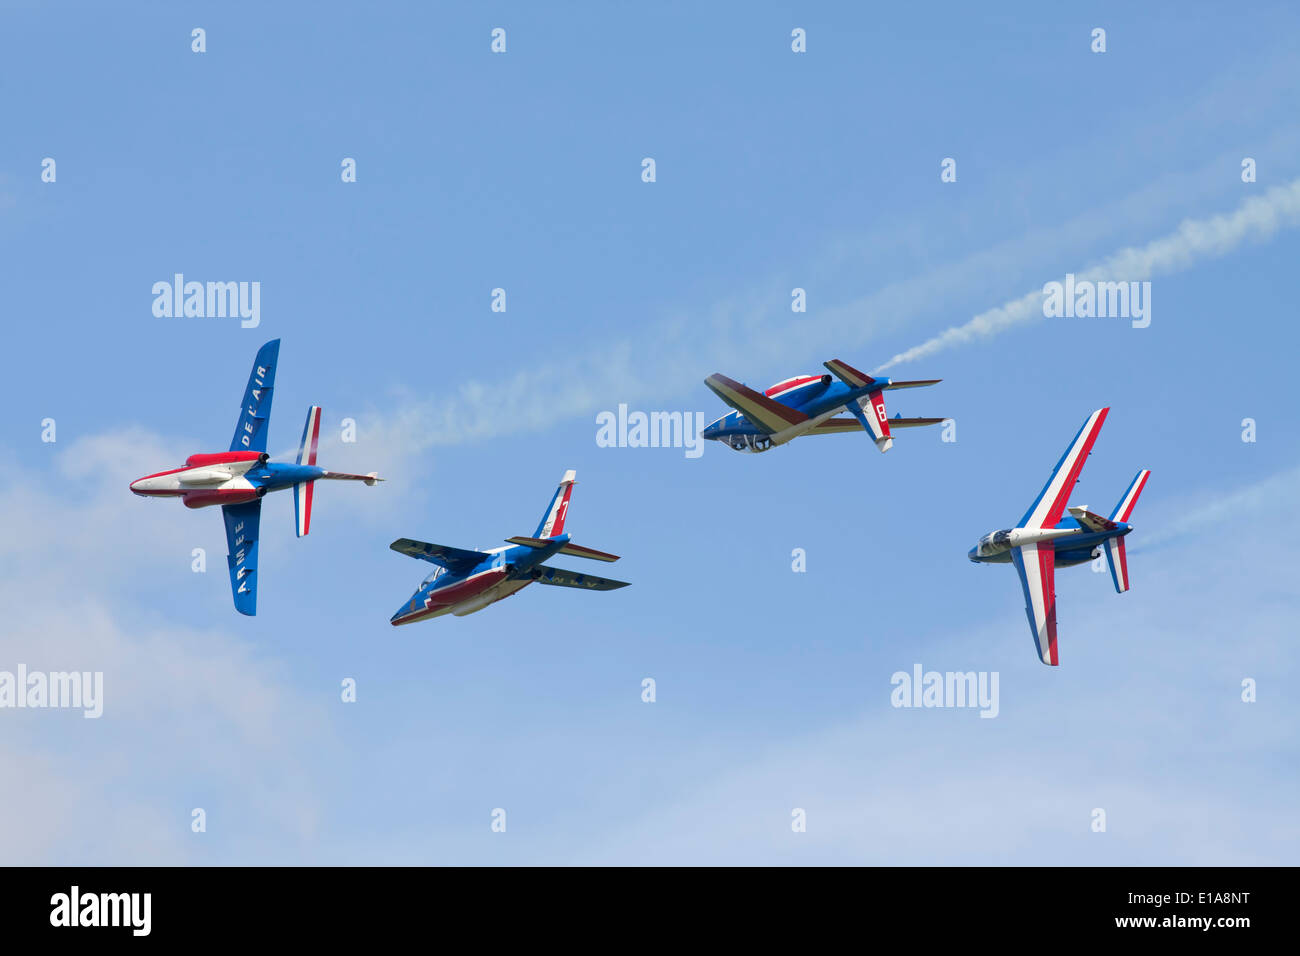 Patroulle de france aerobatic performing at Duxford, England. Stock Photo